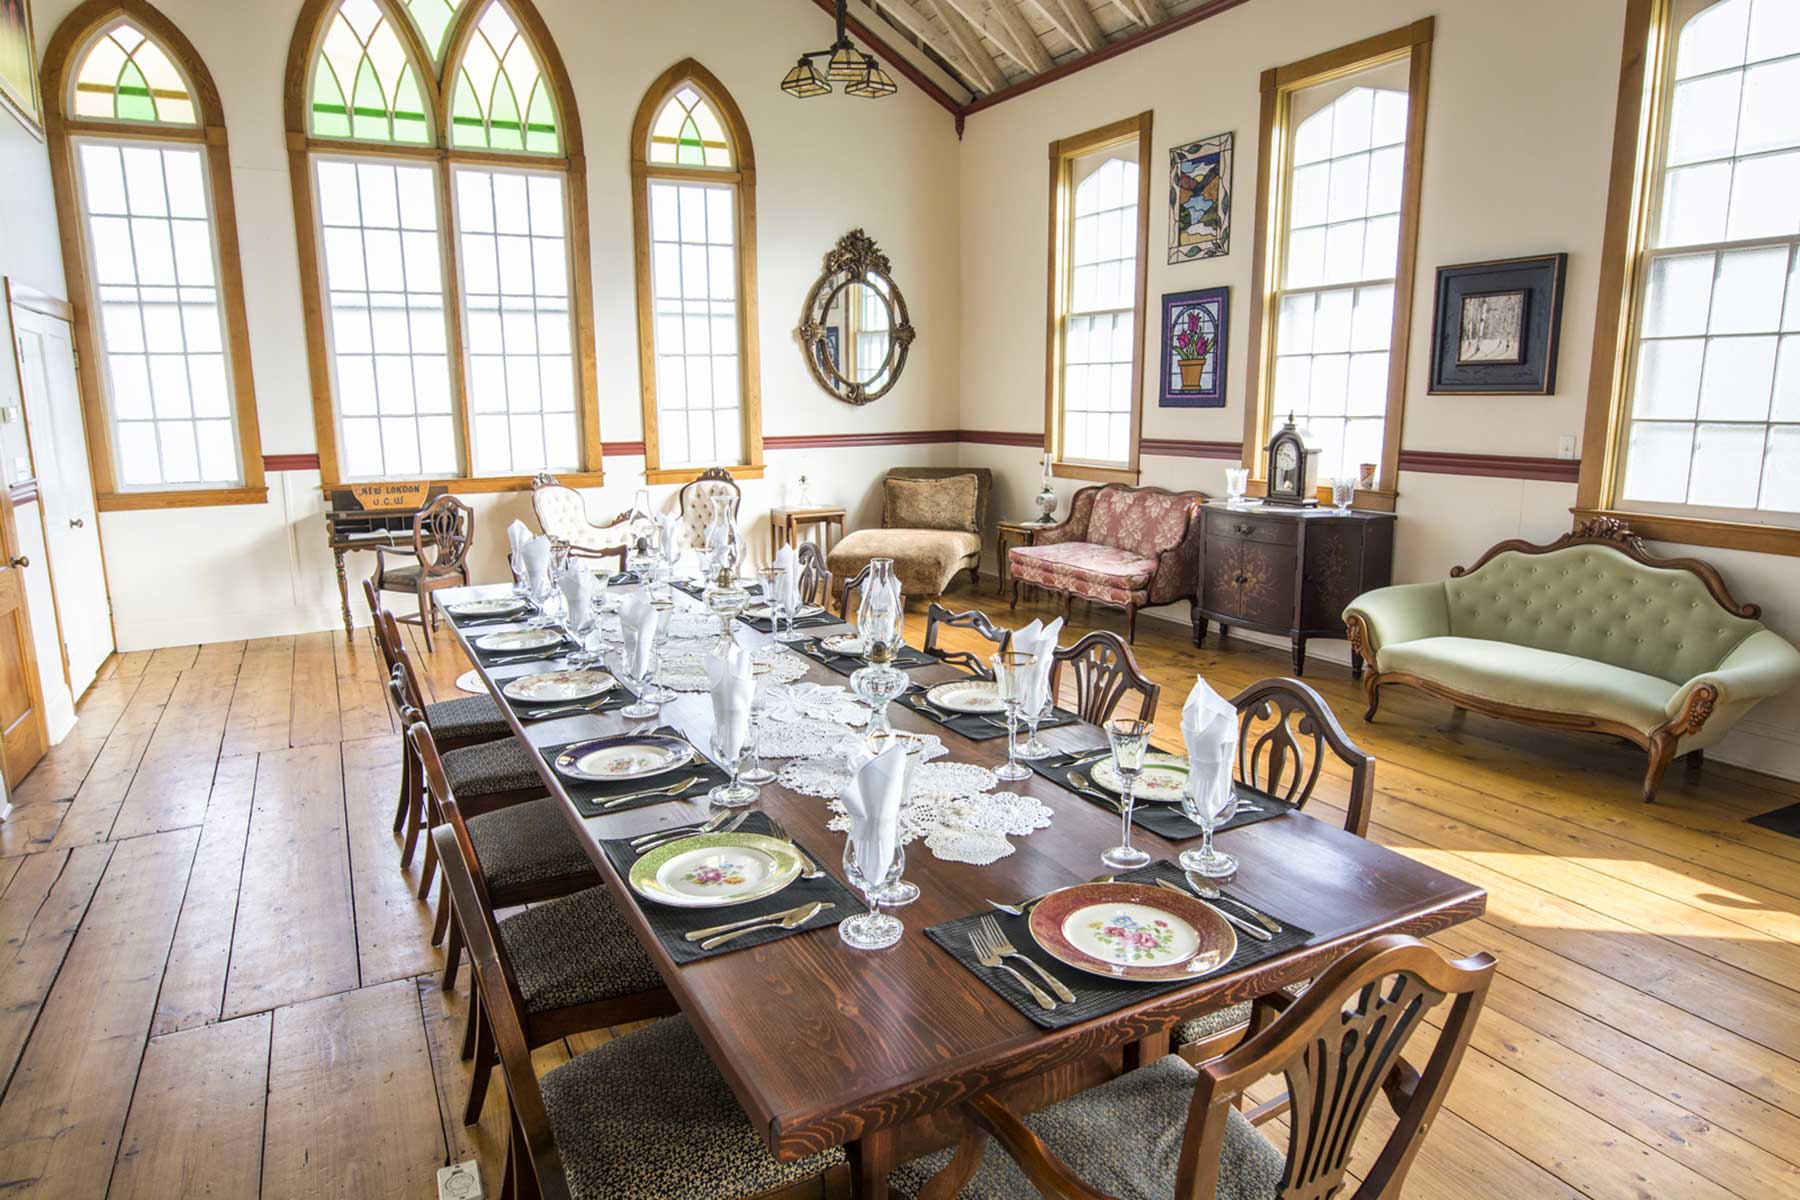 The Table Culinary Studio on Prince Edward Island run cooking classes and private dinners